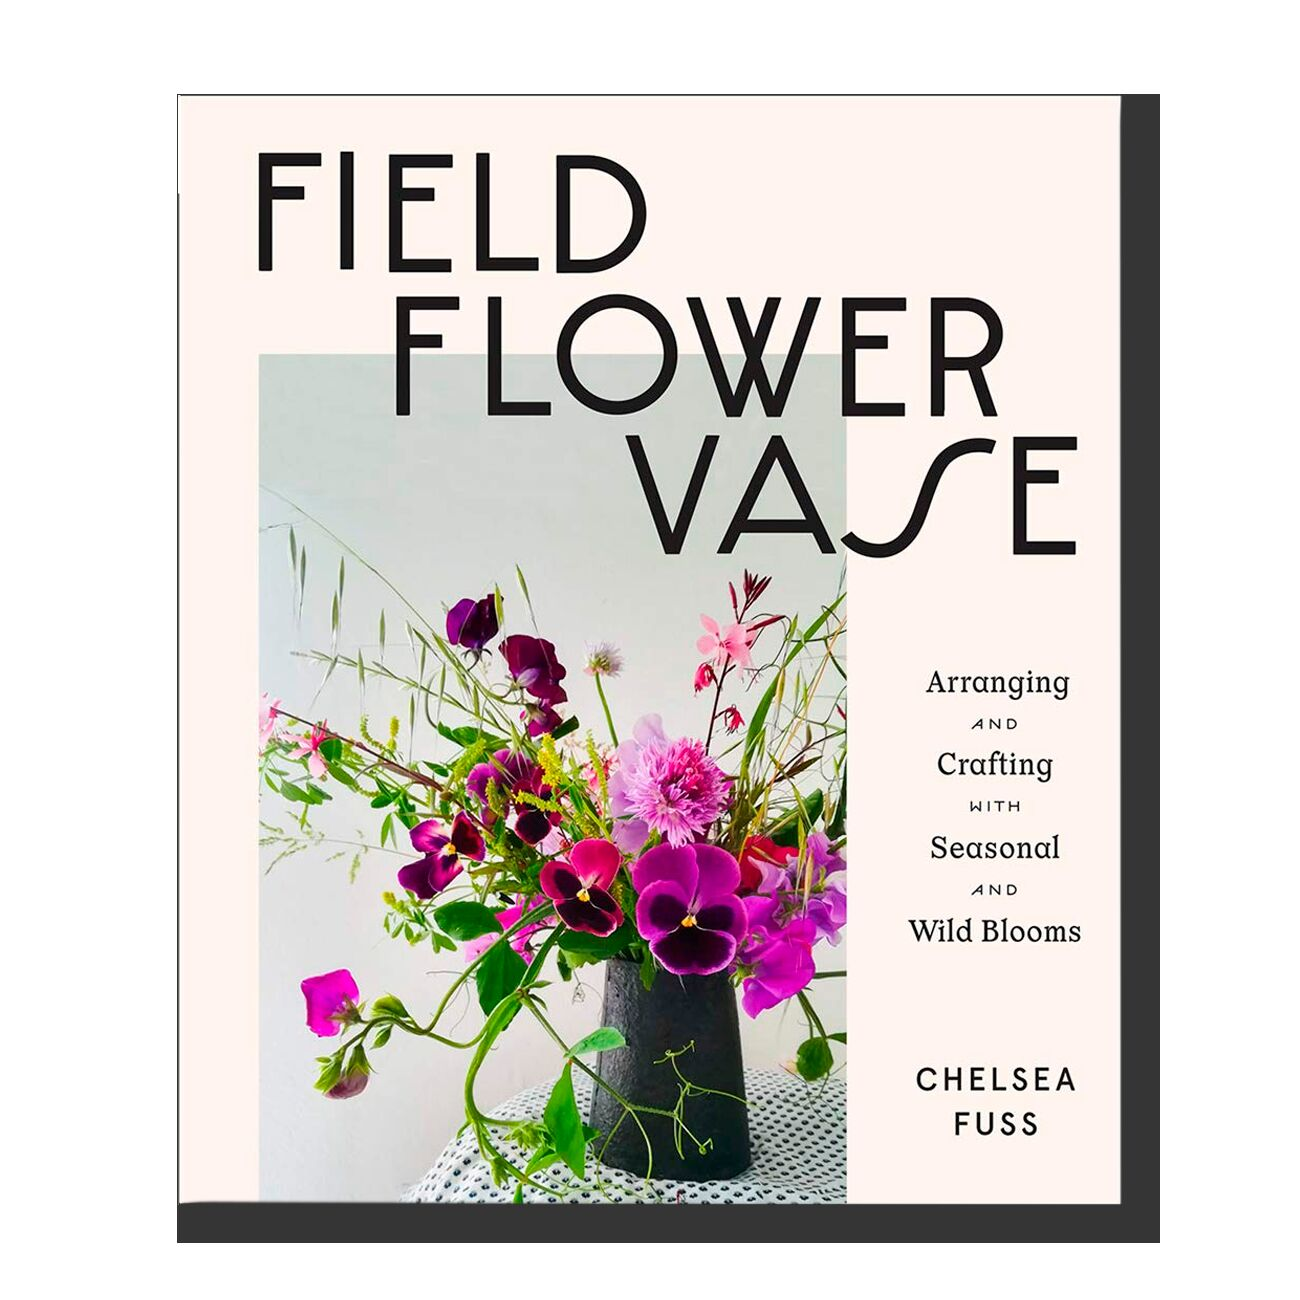 Field, Flower, Vase: Arranging and Crafting with Seasonal and Wild Blooms